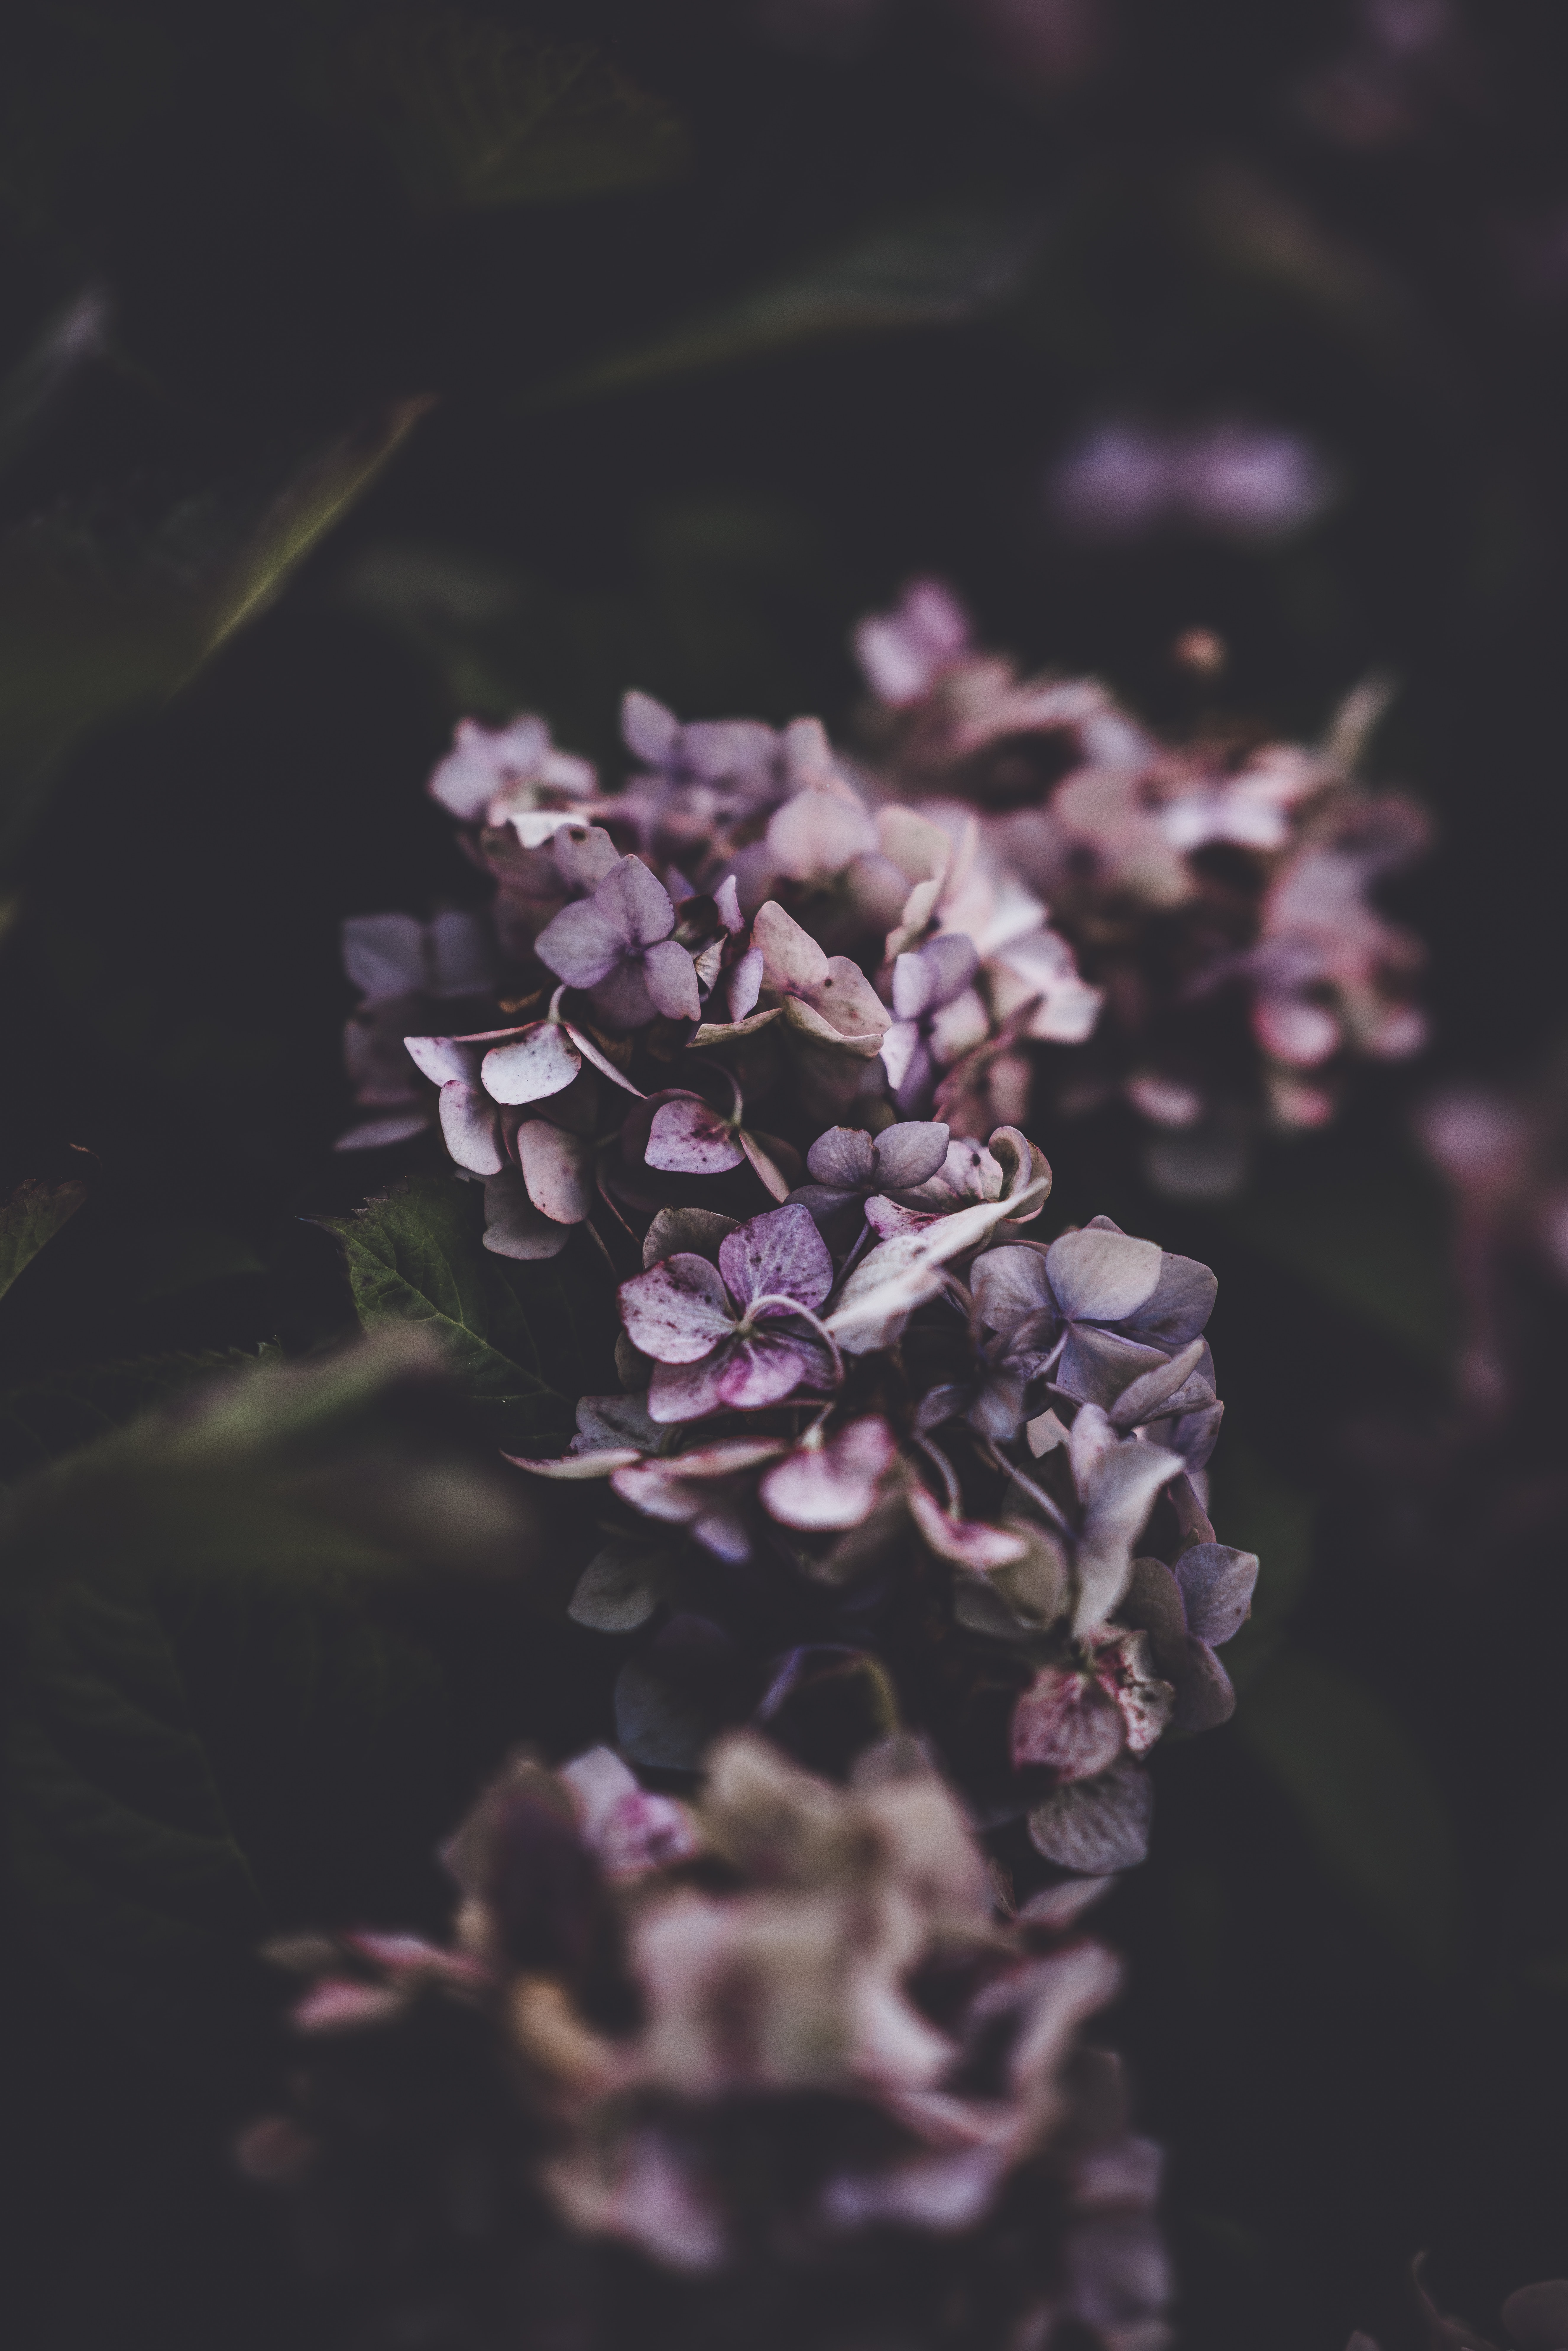 close-0up photography of purple petaled flowers